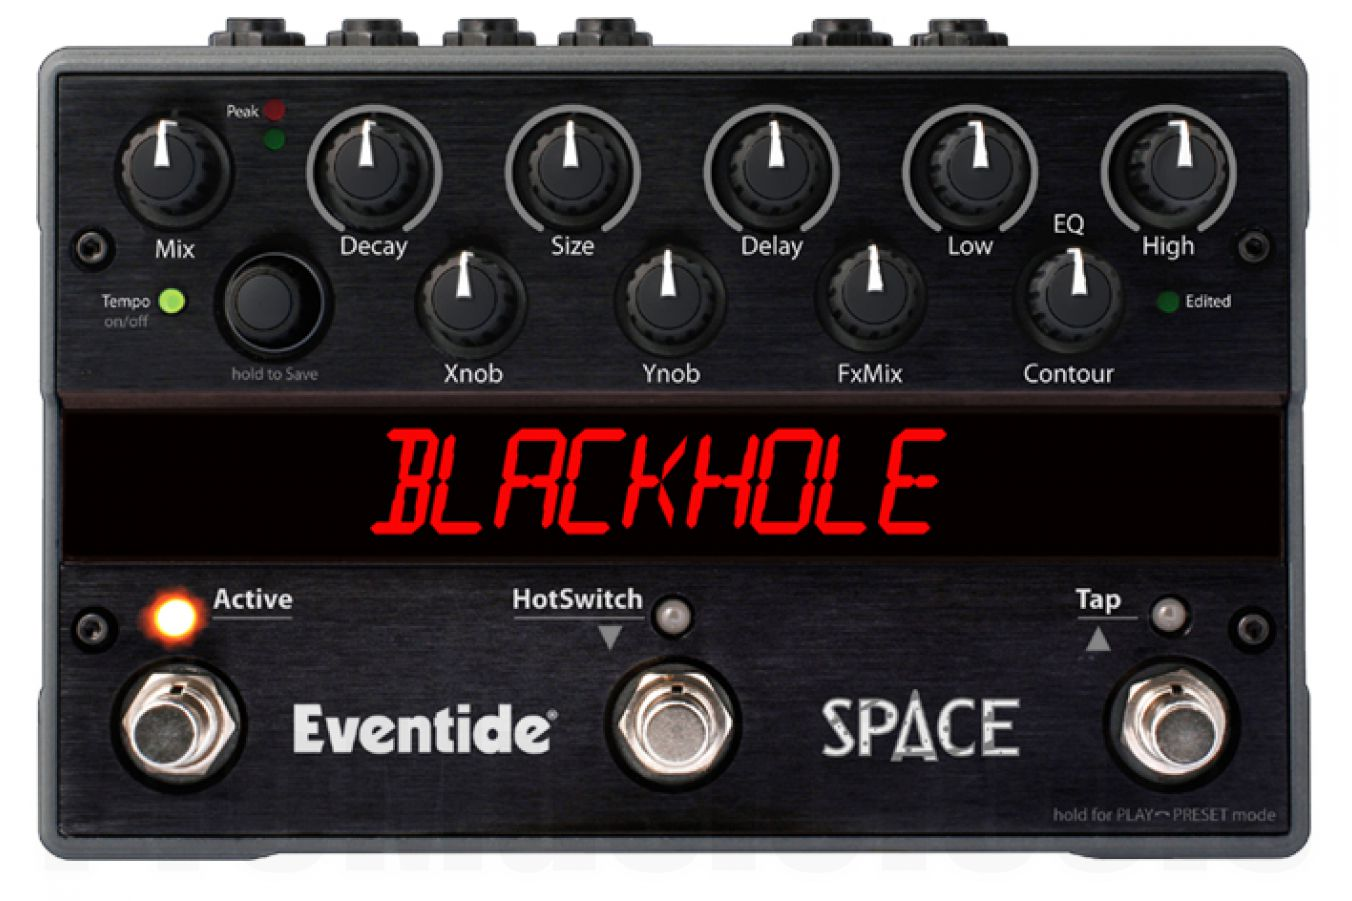 Eventide Space Reverb - demo